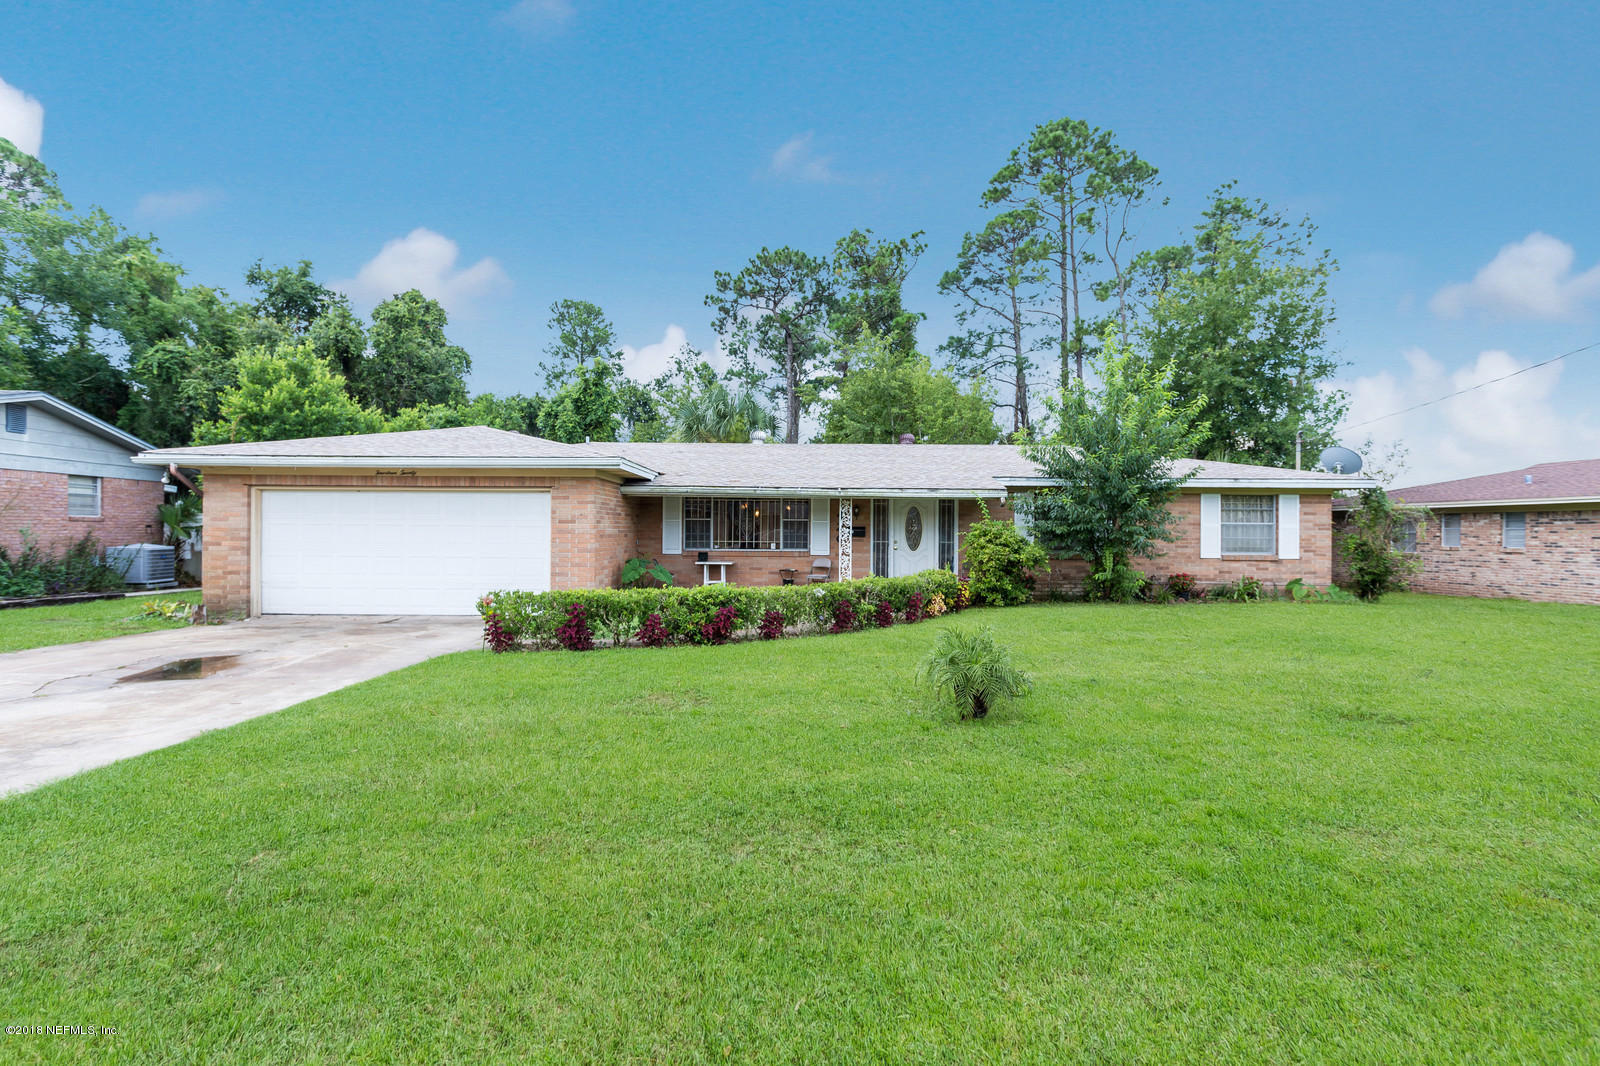 1420 BELLESHORE, JACKSONVILLE, FLORIDA 32218, 3 Bedrooms Bedrooms, ,2 BathroomsBathrooms,Residential - single family,For sale,BELLESHORE,949611